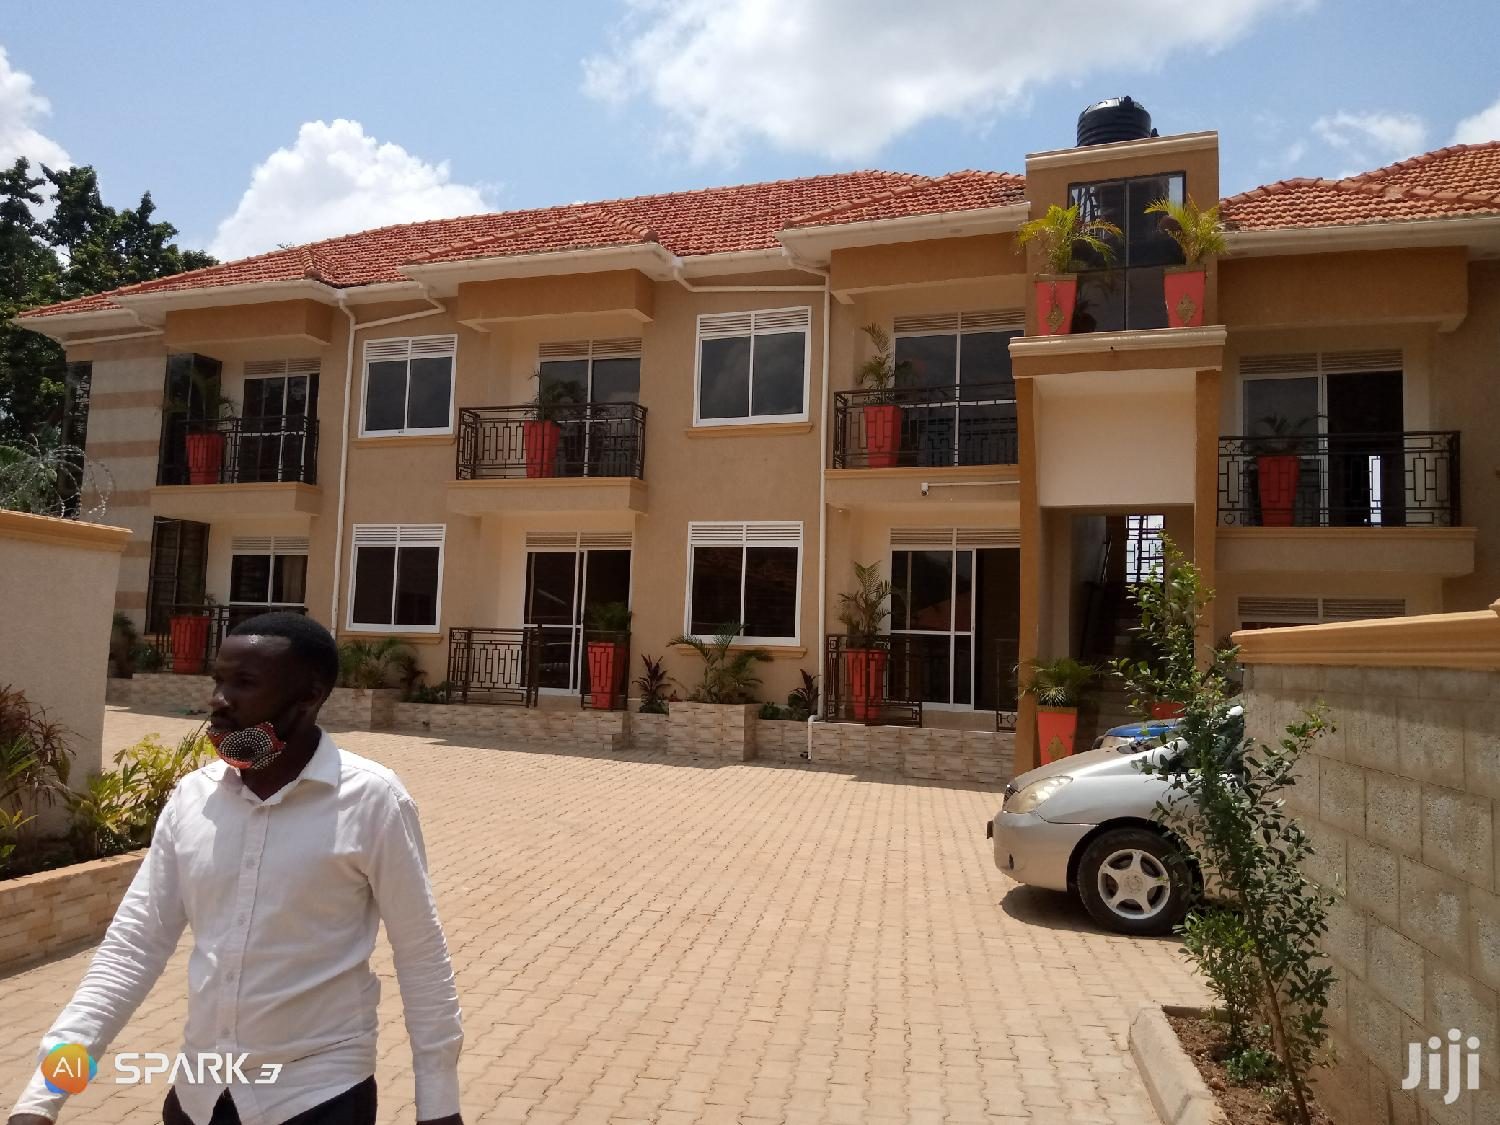 Hot Cake Twelve Rental Units For Sale In Kyanja | Houses & Apartments For Sale for sale in Kampala, Central Region, Uganda